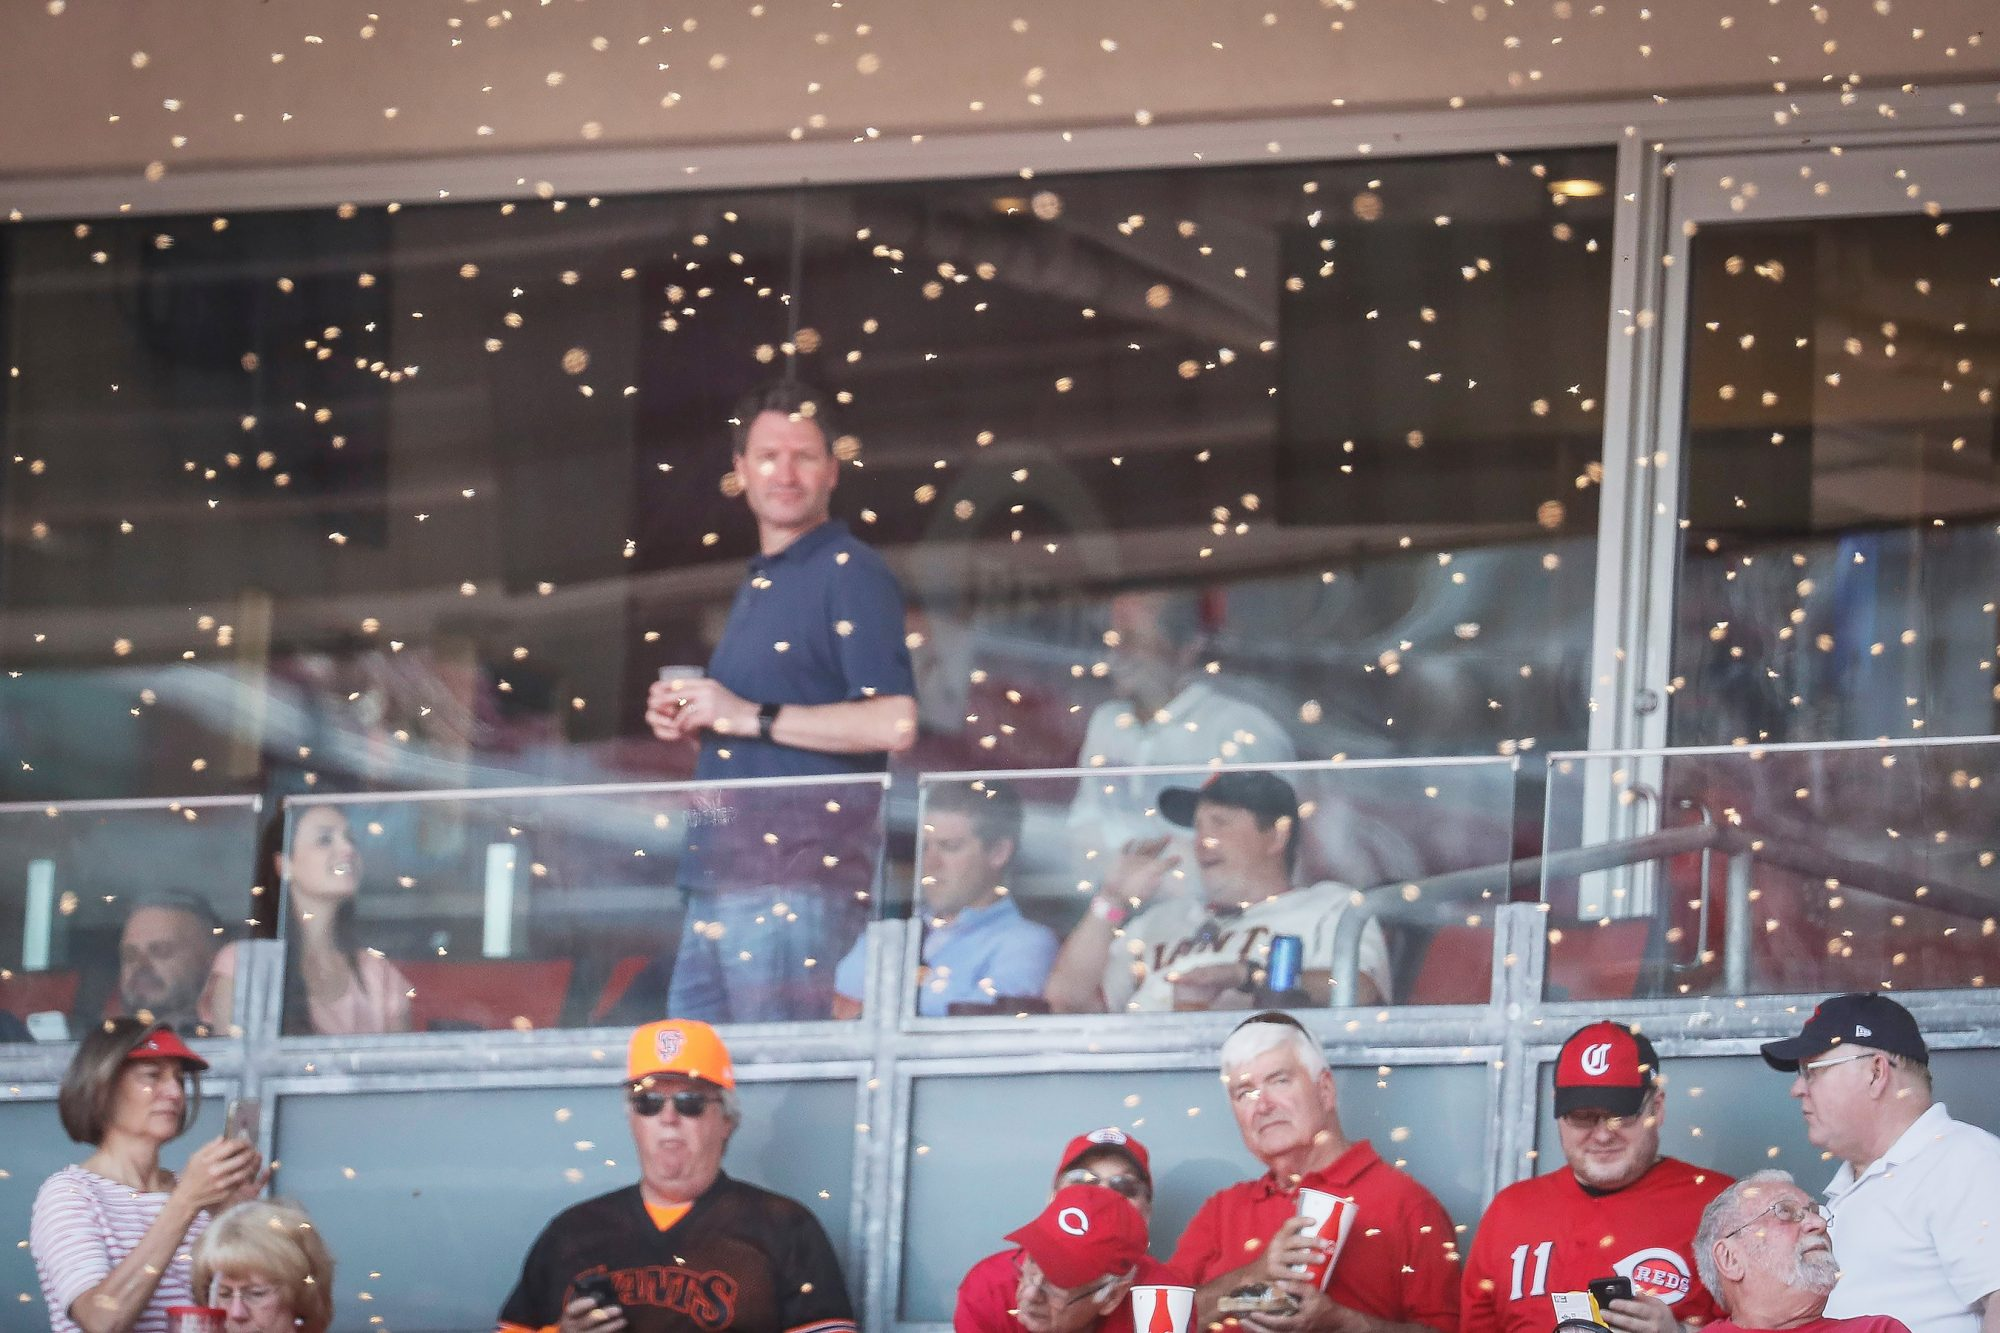 A swarm of bees delays the start of a baseball game between the Cincinnati Reds and the San Francisco Giants, in Cincinnati Giants Reds Baseball, Cincinnati, USA - 06 May 2019